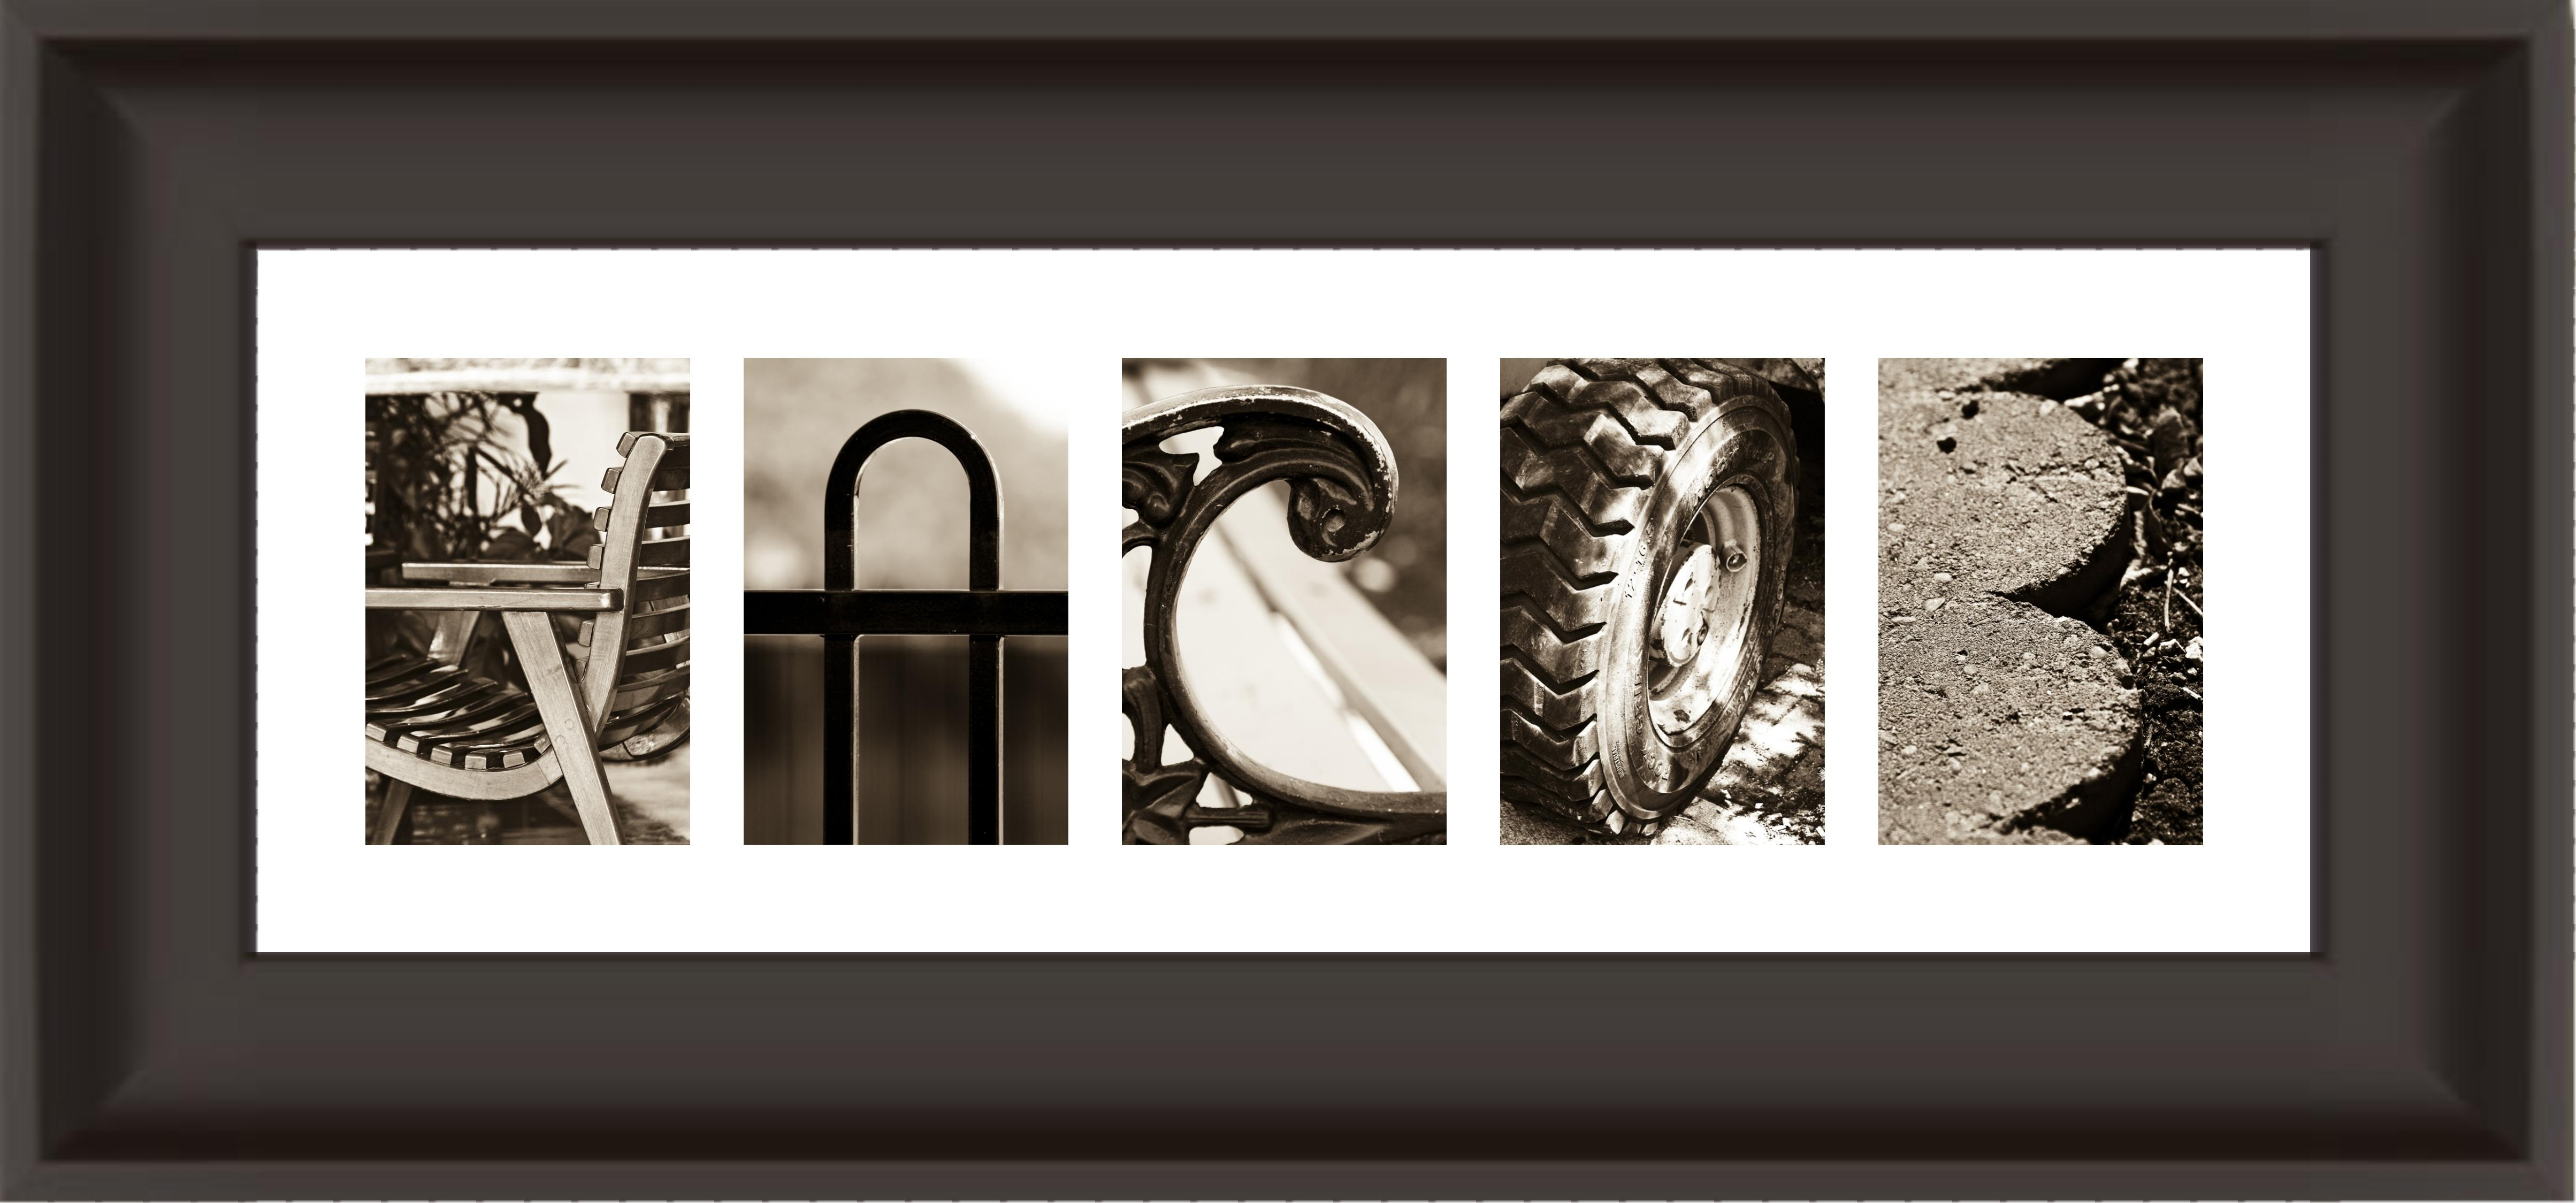 Diy Alphabet Photography Frames - kootation.